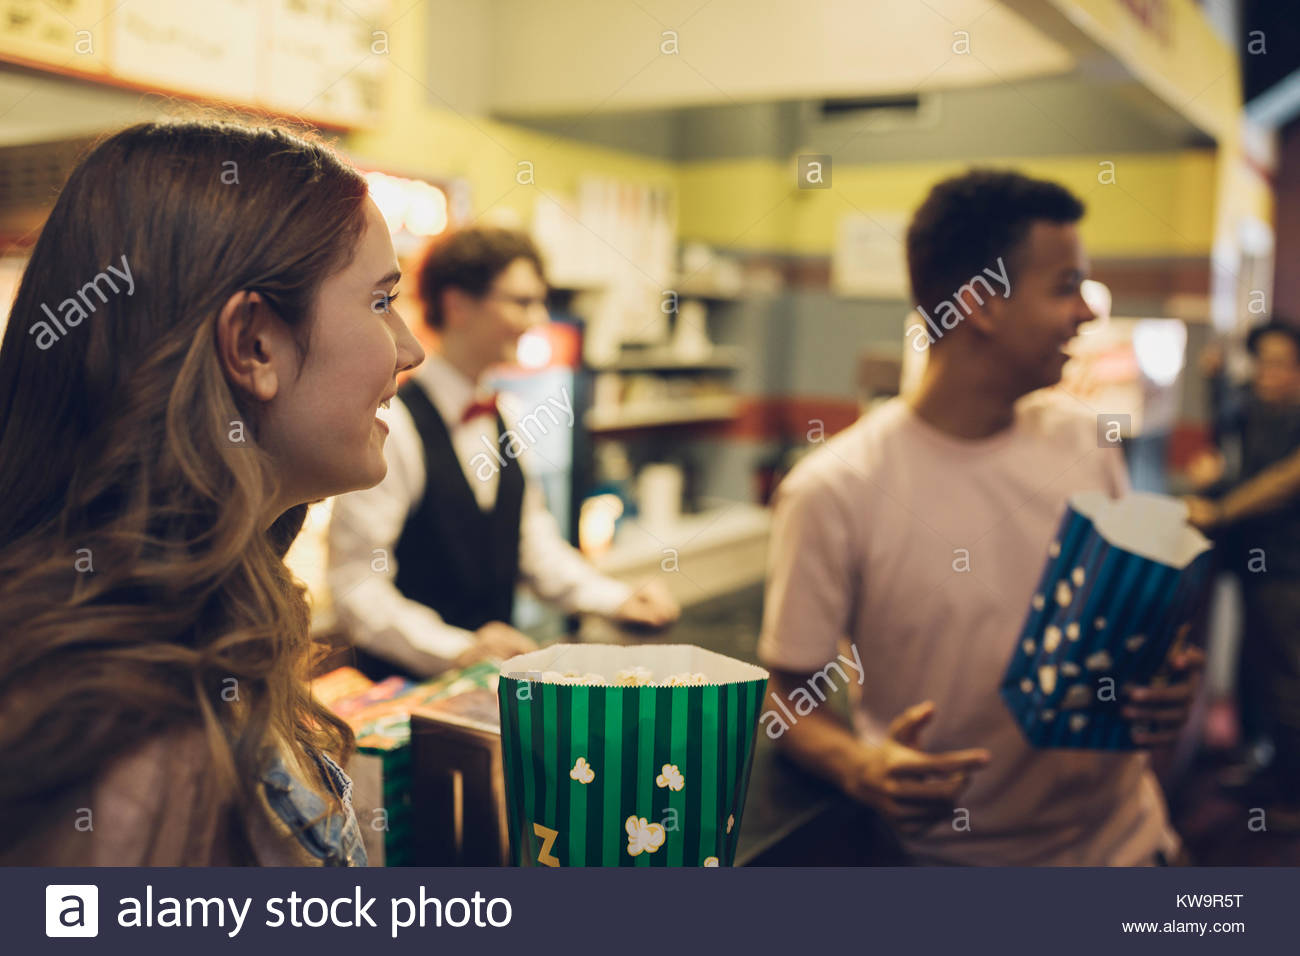 Smiling tween friends with popcorn at refreshments concession stand movie theater - Stock Image